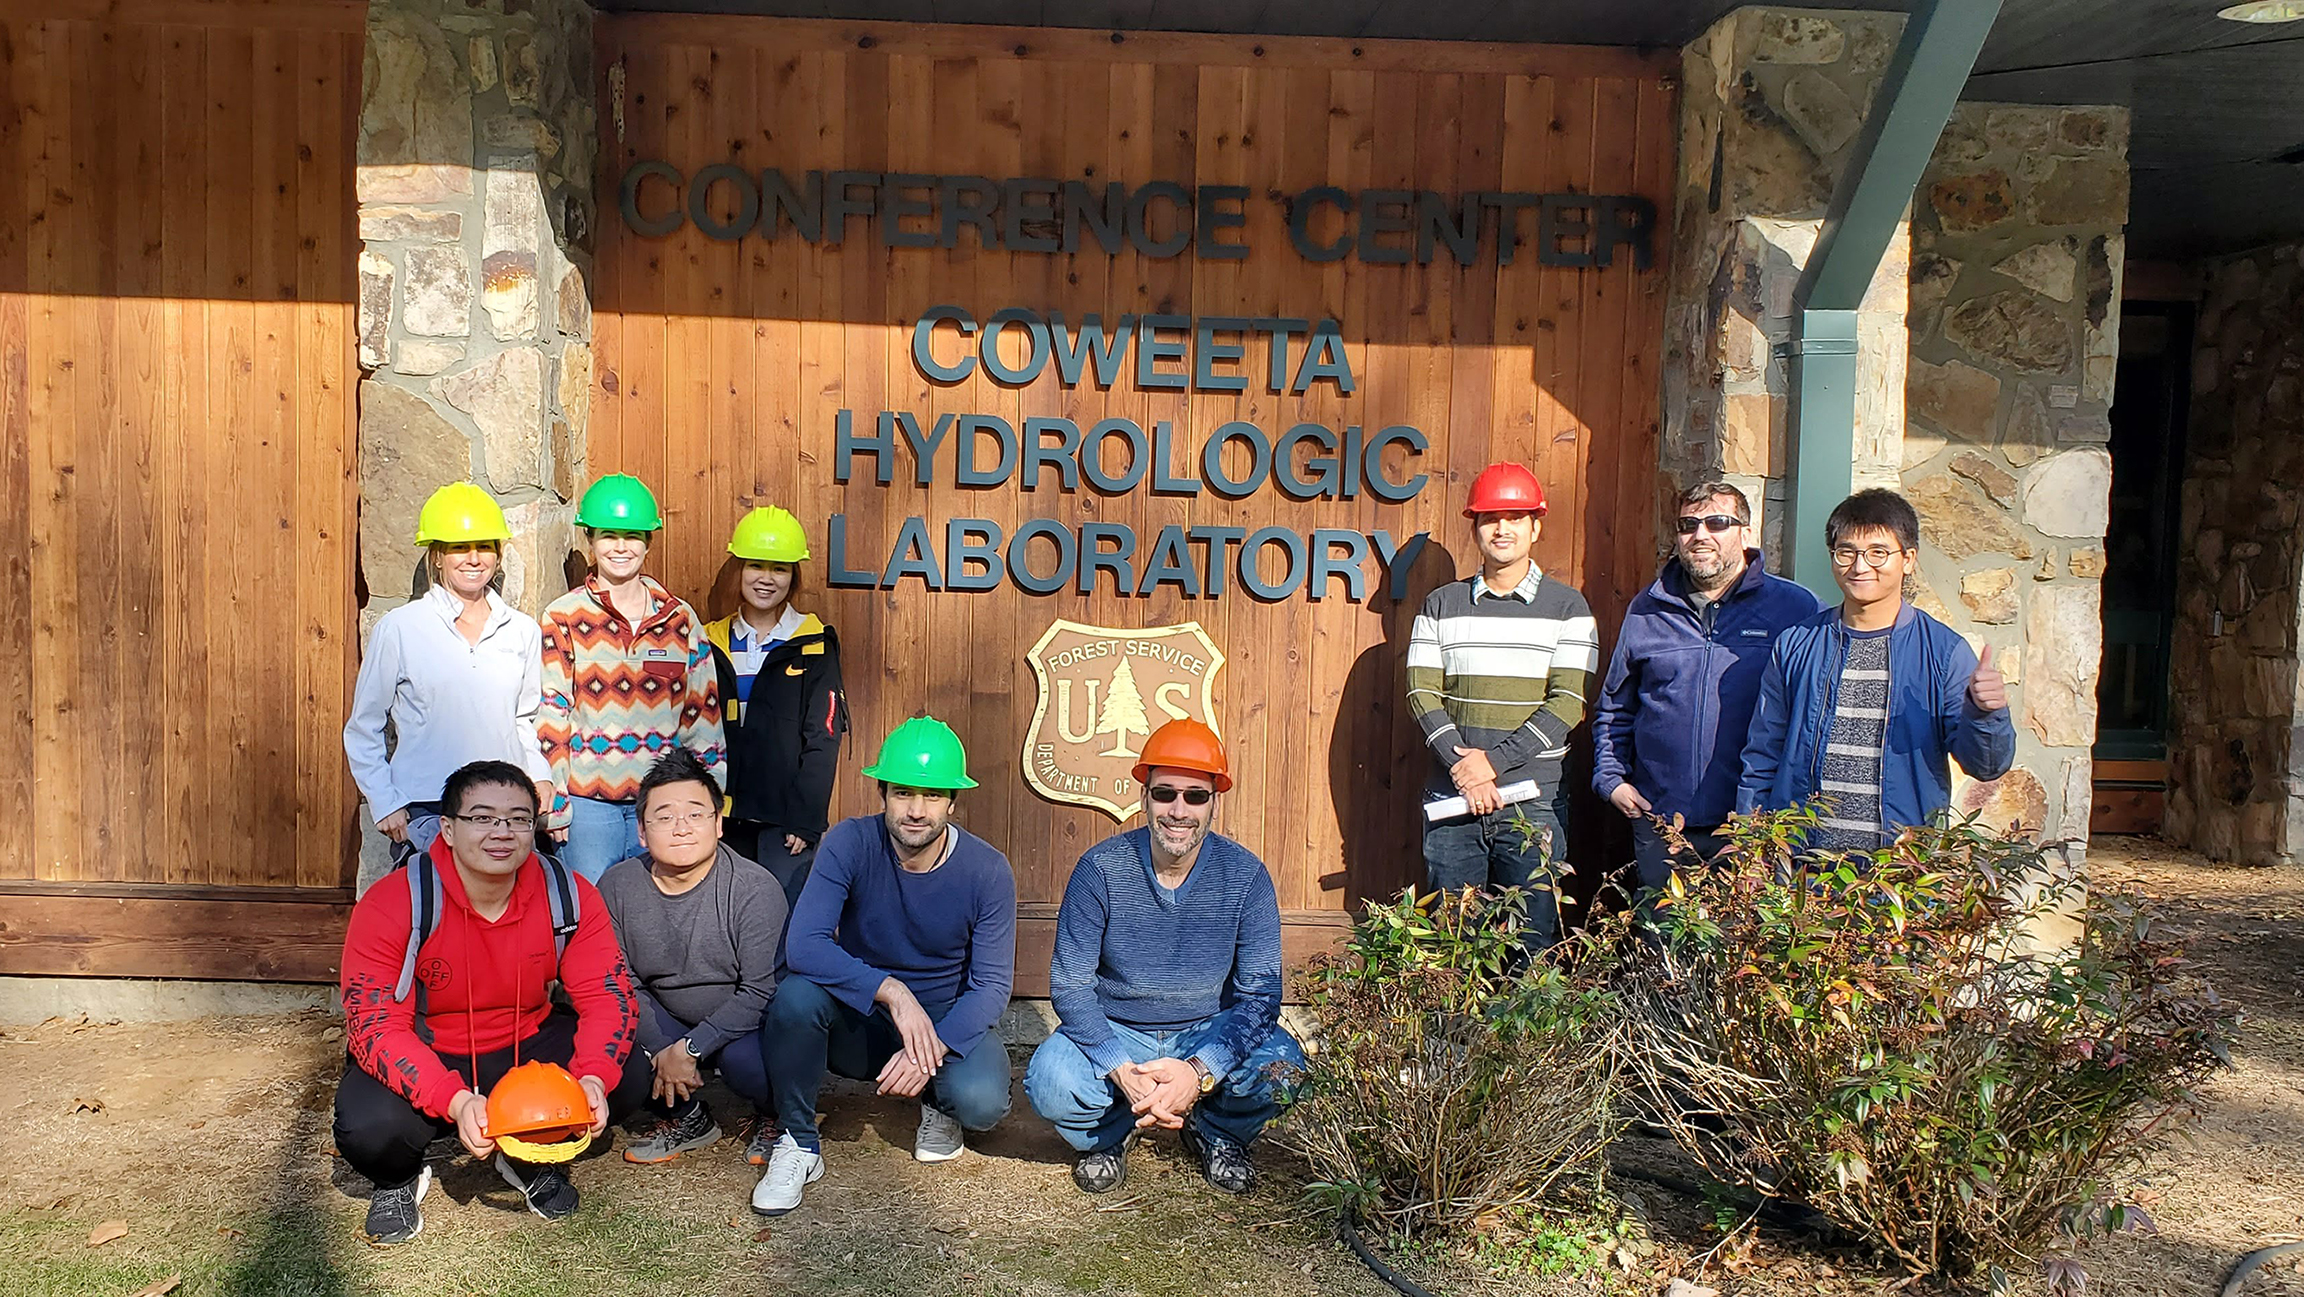 Conference Center Coweeta Hydrologic Laboratory